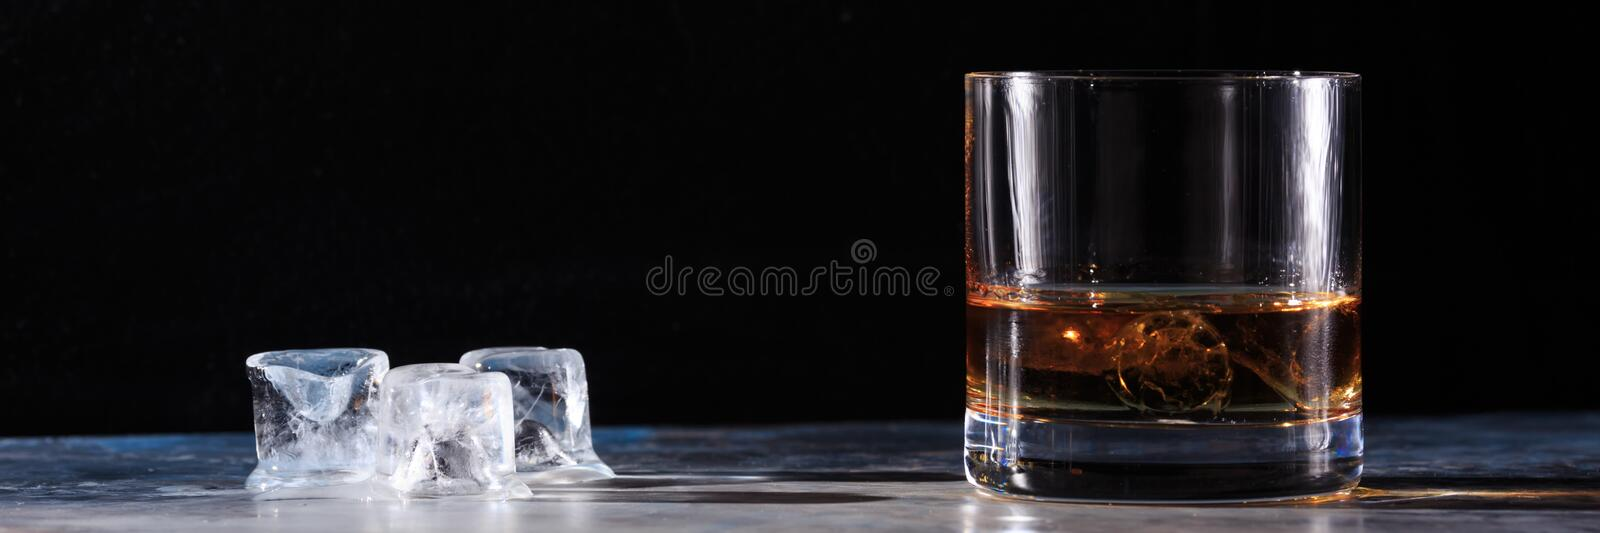 Glass of whiskey with ice on the table royalty free stock photo